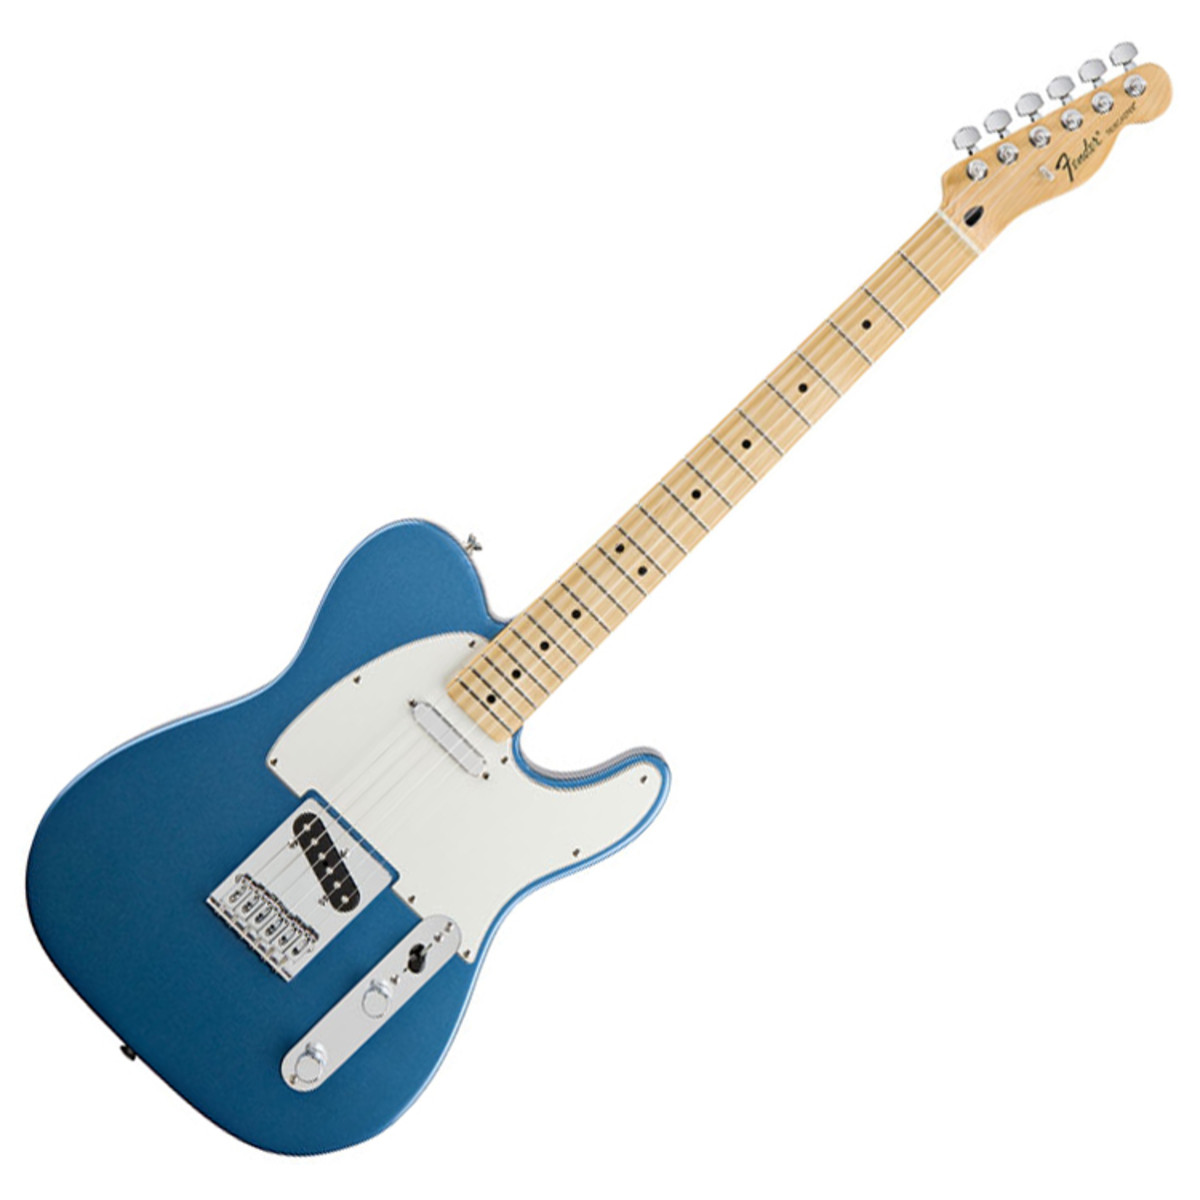 fender standard telecaster lake placid blue nearly new at gear4music. Black Bedroom Furniture Sets. Home Design Ideas